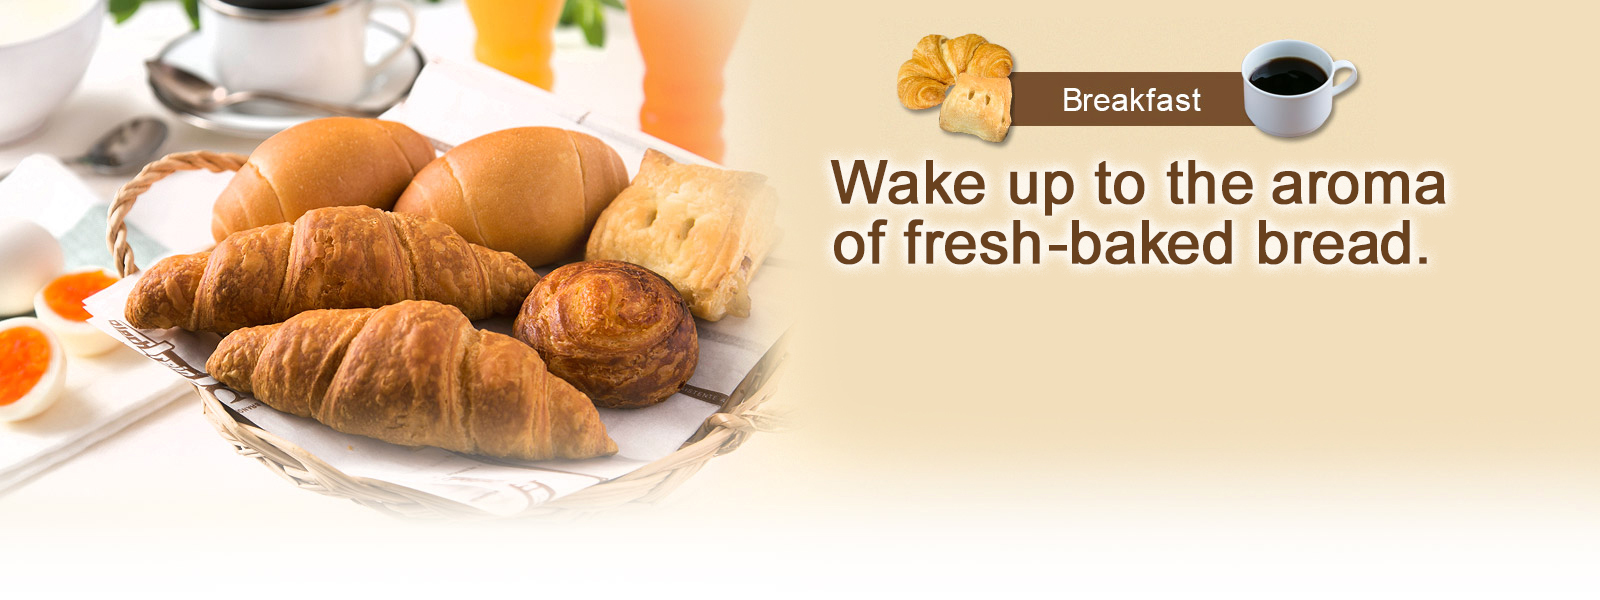 Wake up to the aroma of fresh-baked bread.